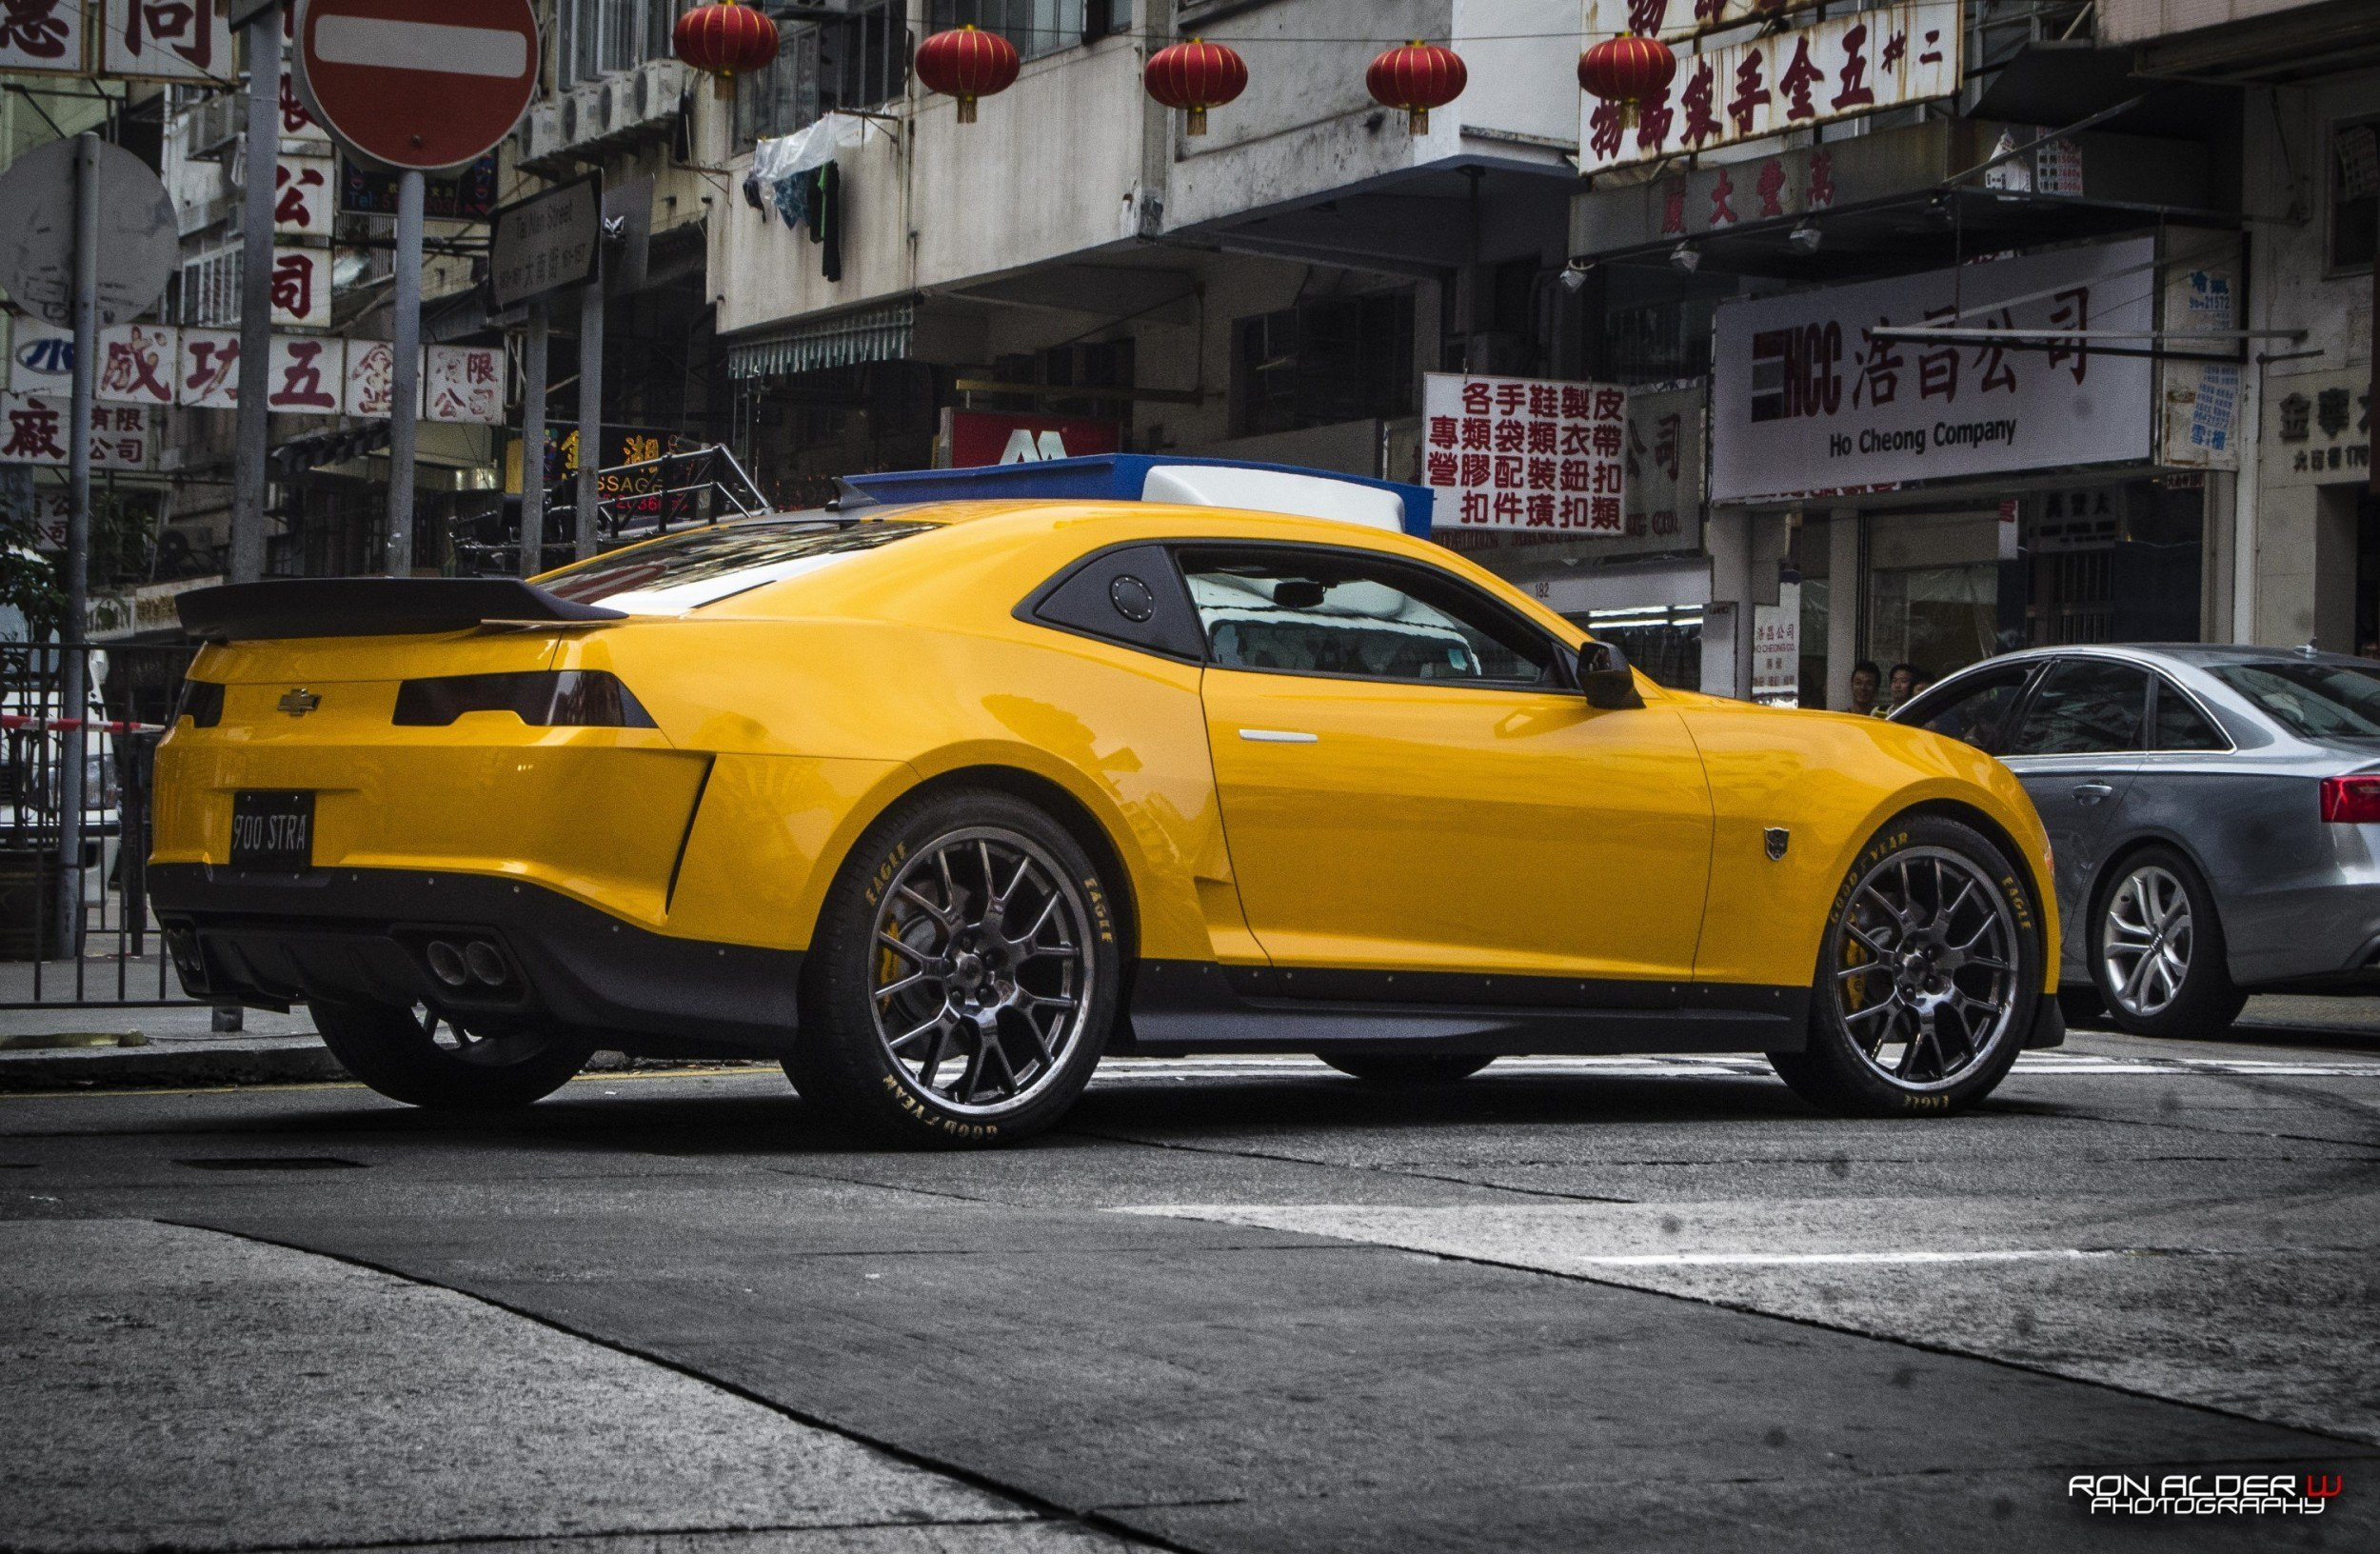 prediction bumblebee chevrolet camaro gone after transformers4 info about 1967 z 28 and. Black Bedroom Furniture Sets. Home Design Ideas